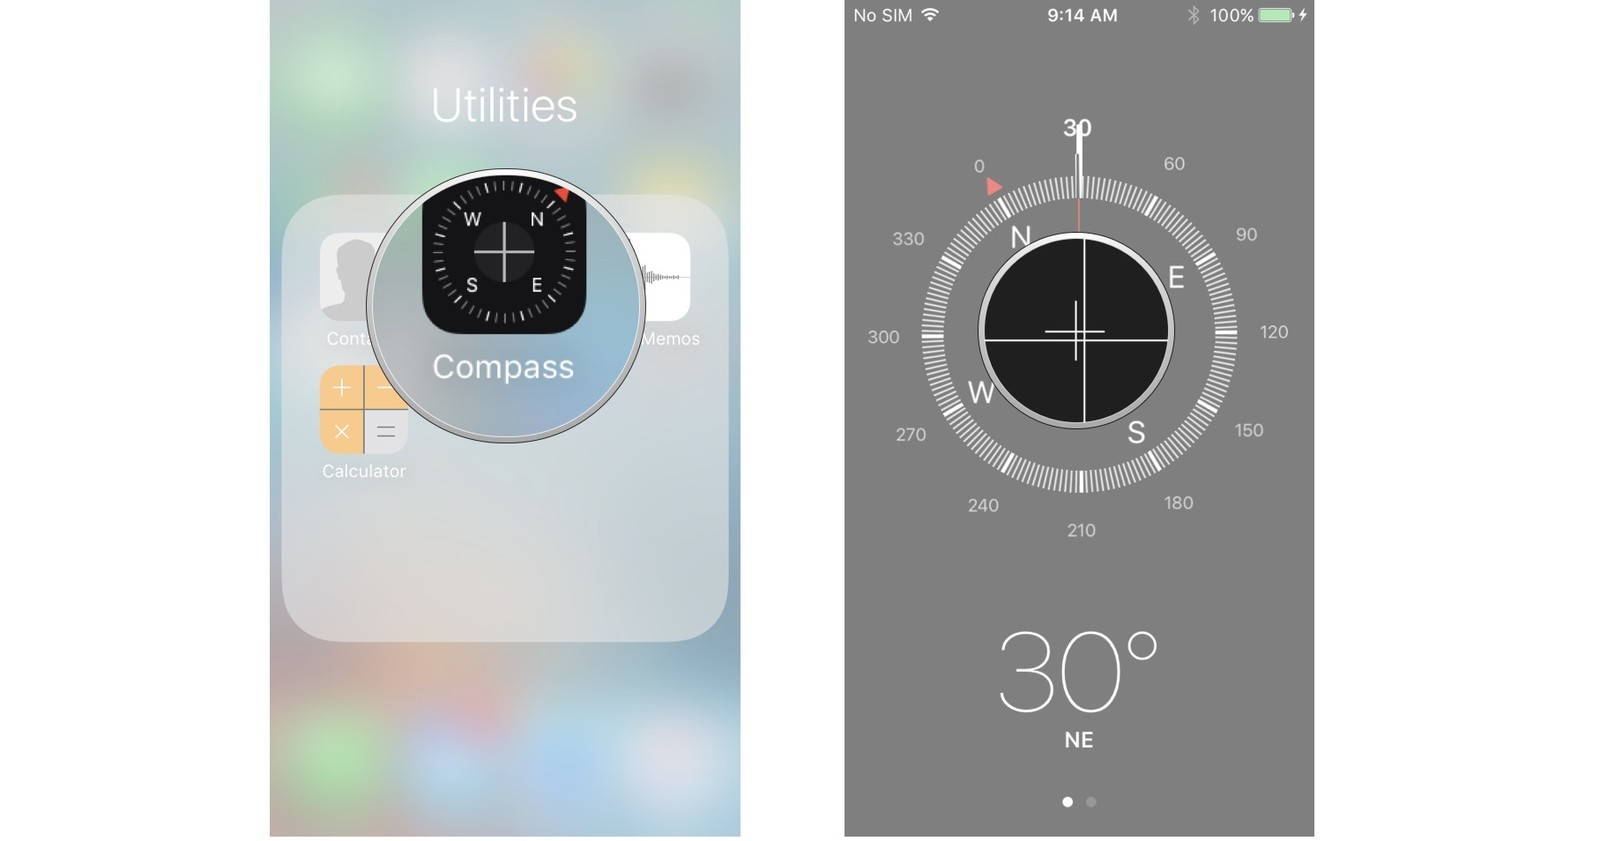 How to use the Compass on iPhone | iMore